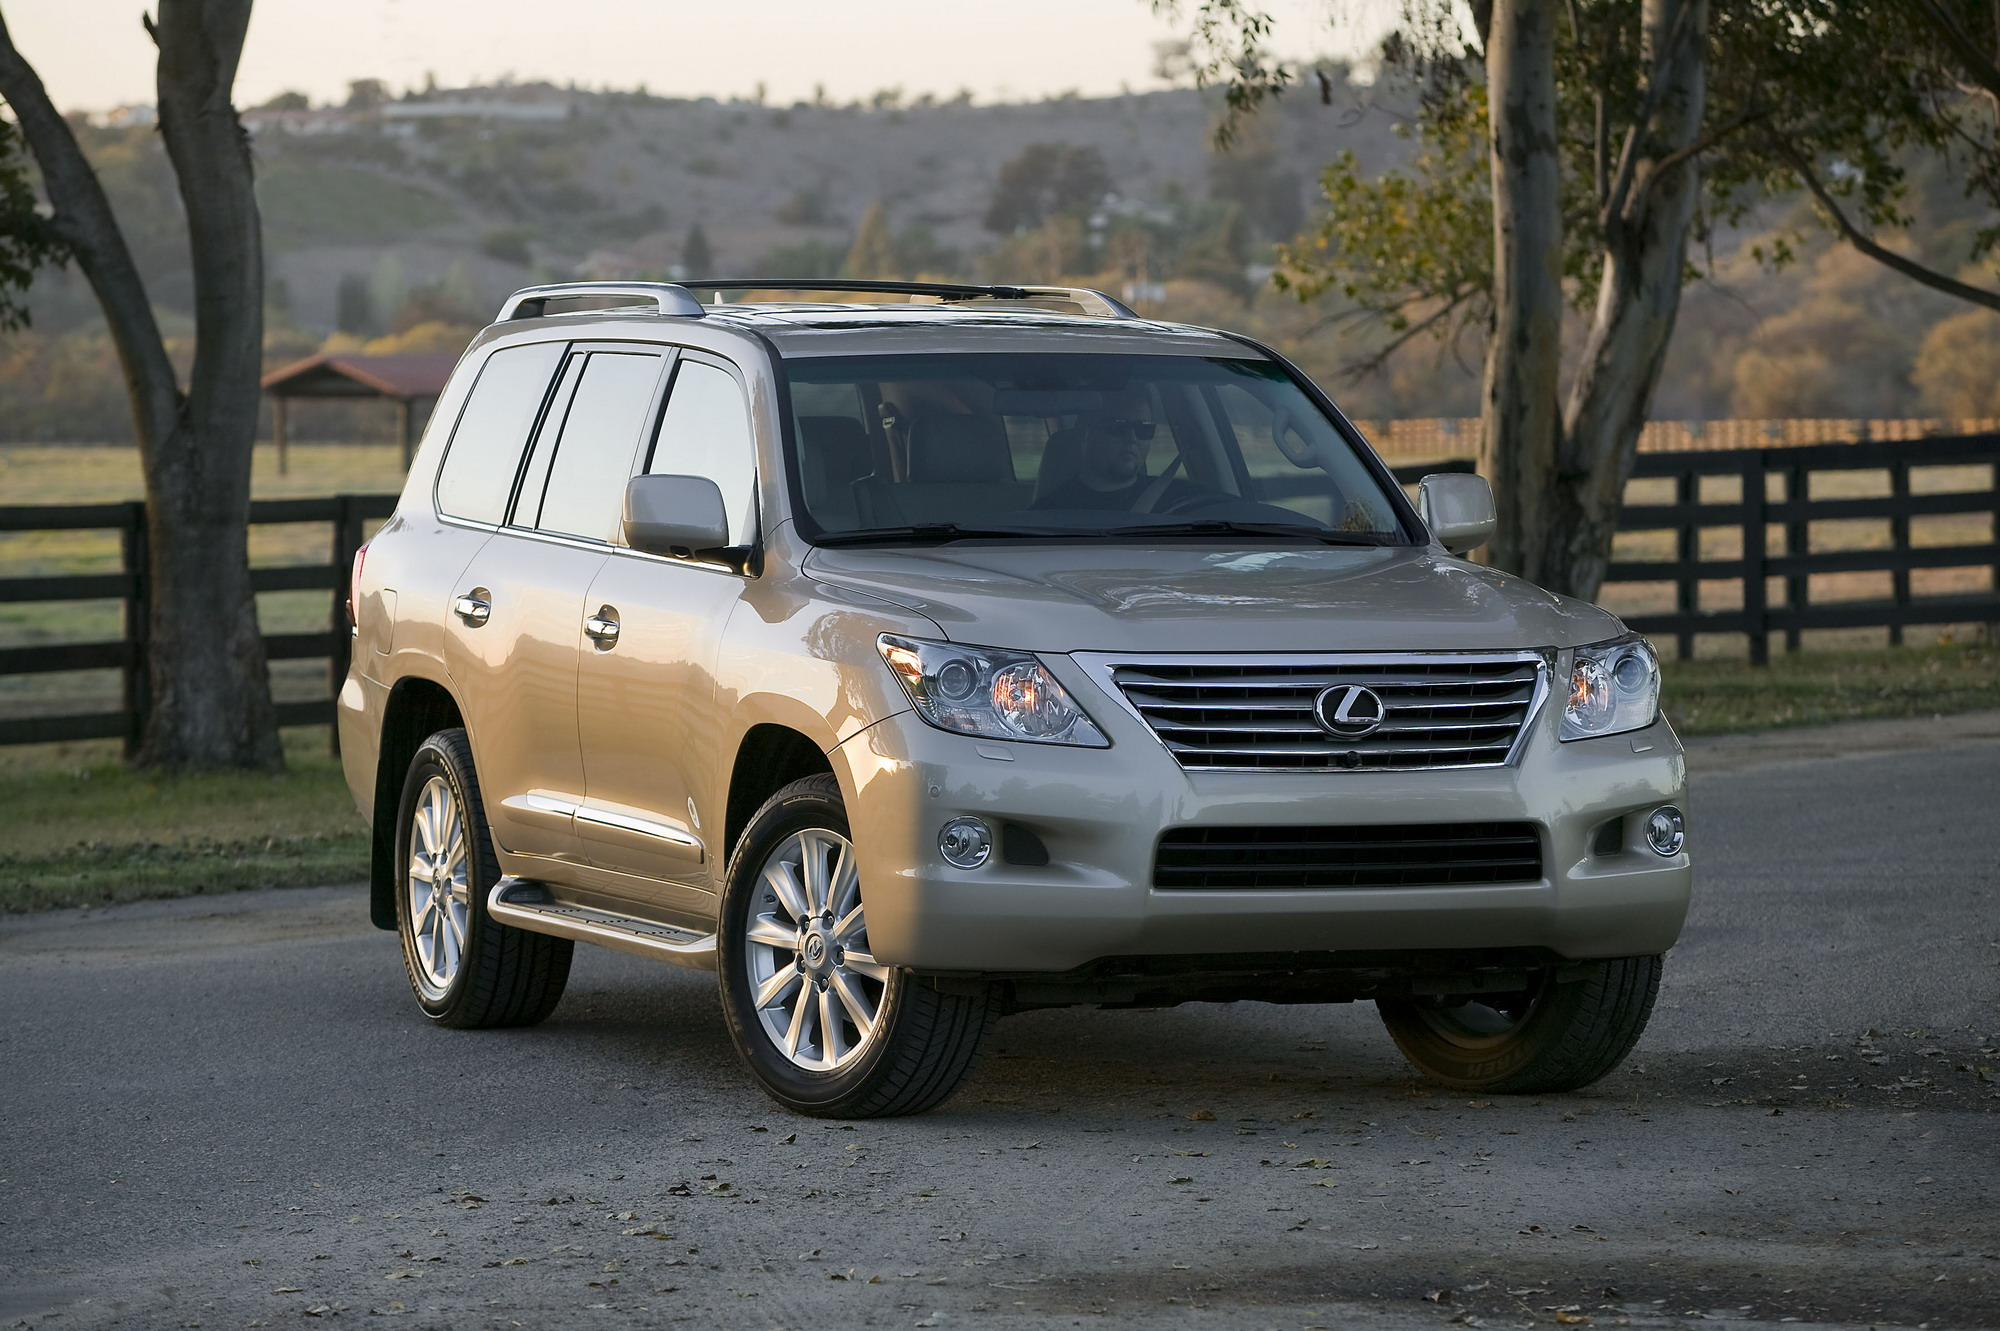 2010 lexus lx570 review top speed. Black Bedroom Furniture Sets. Home Design Ideas